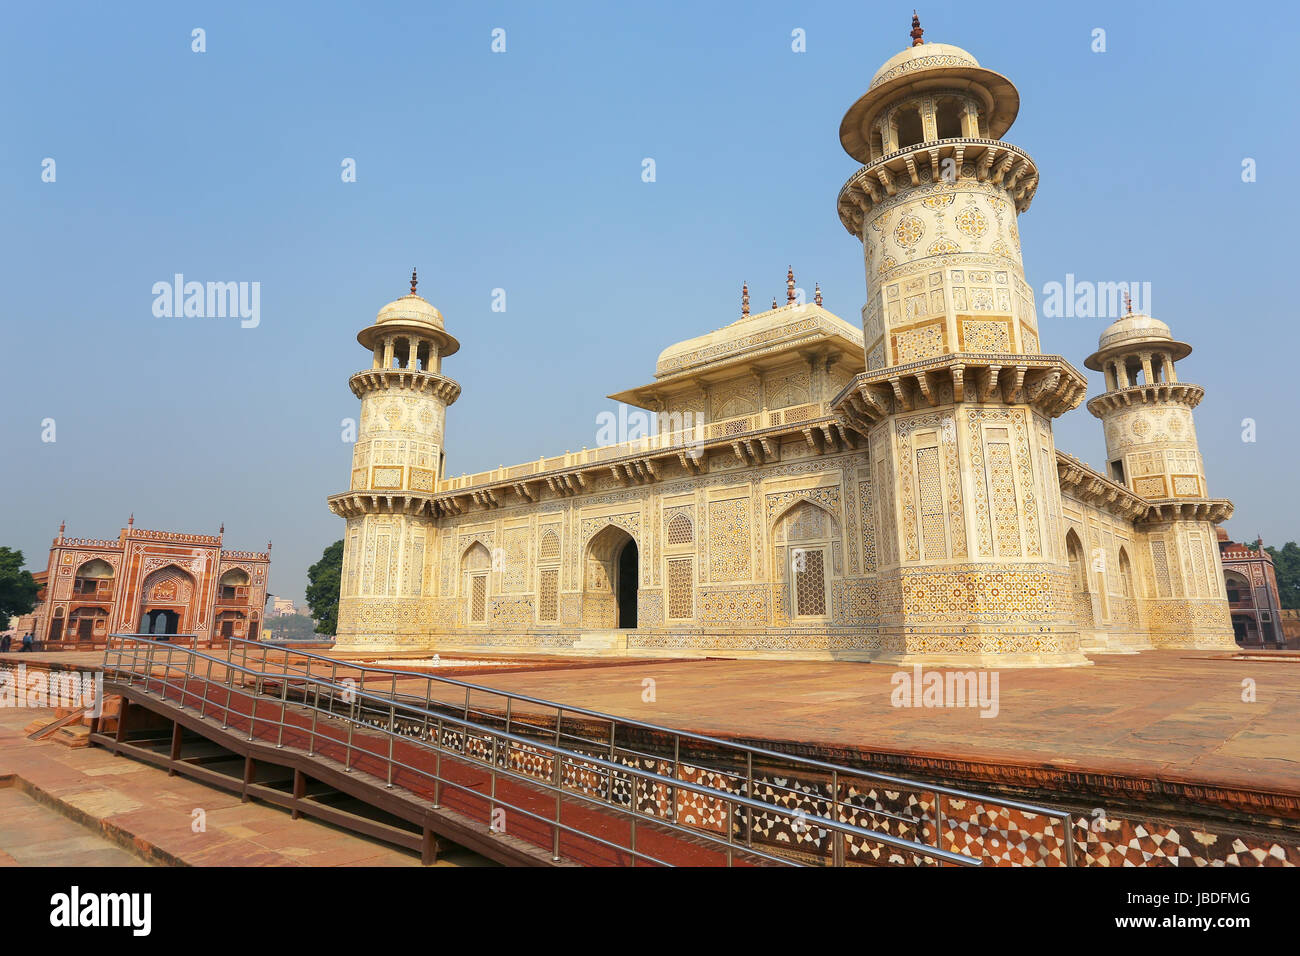 Tomb of Itimad-ud-Daulah in Agra, Uttar Pradesh, India. This Tomb is often regarded as a draft of the Taj Mahal. - Stock Image